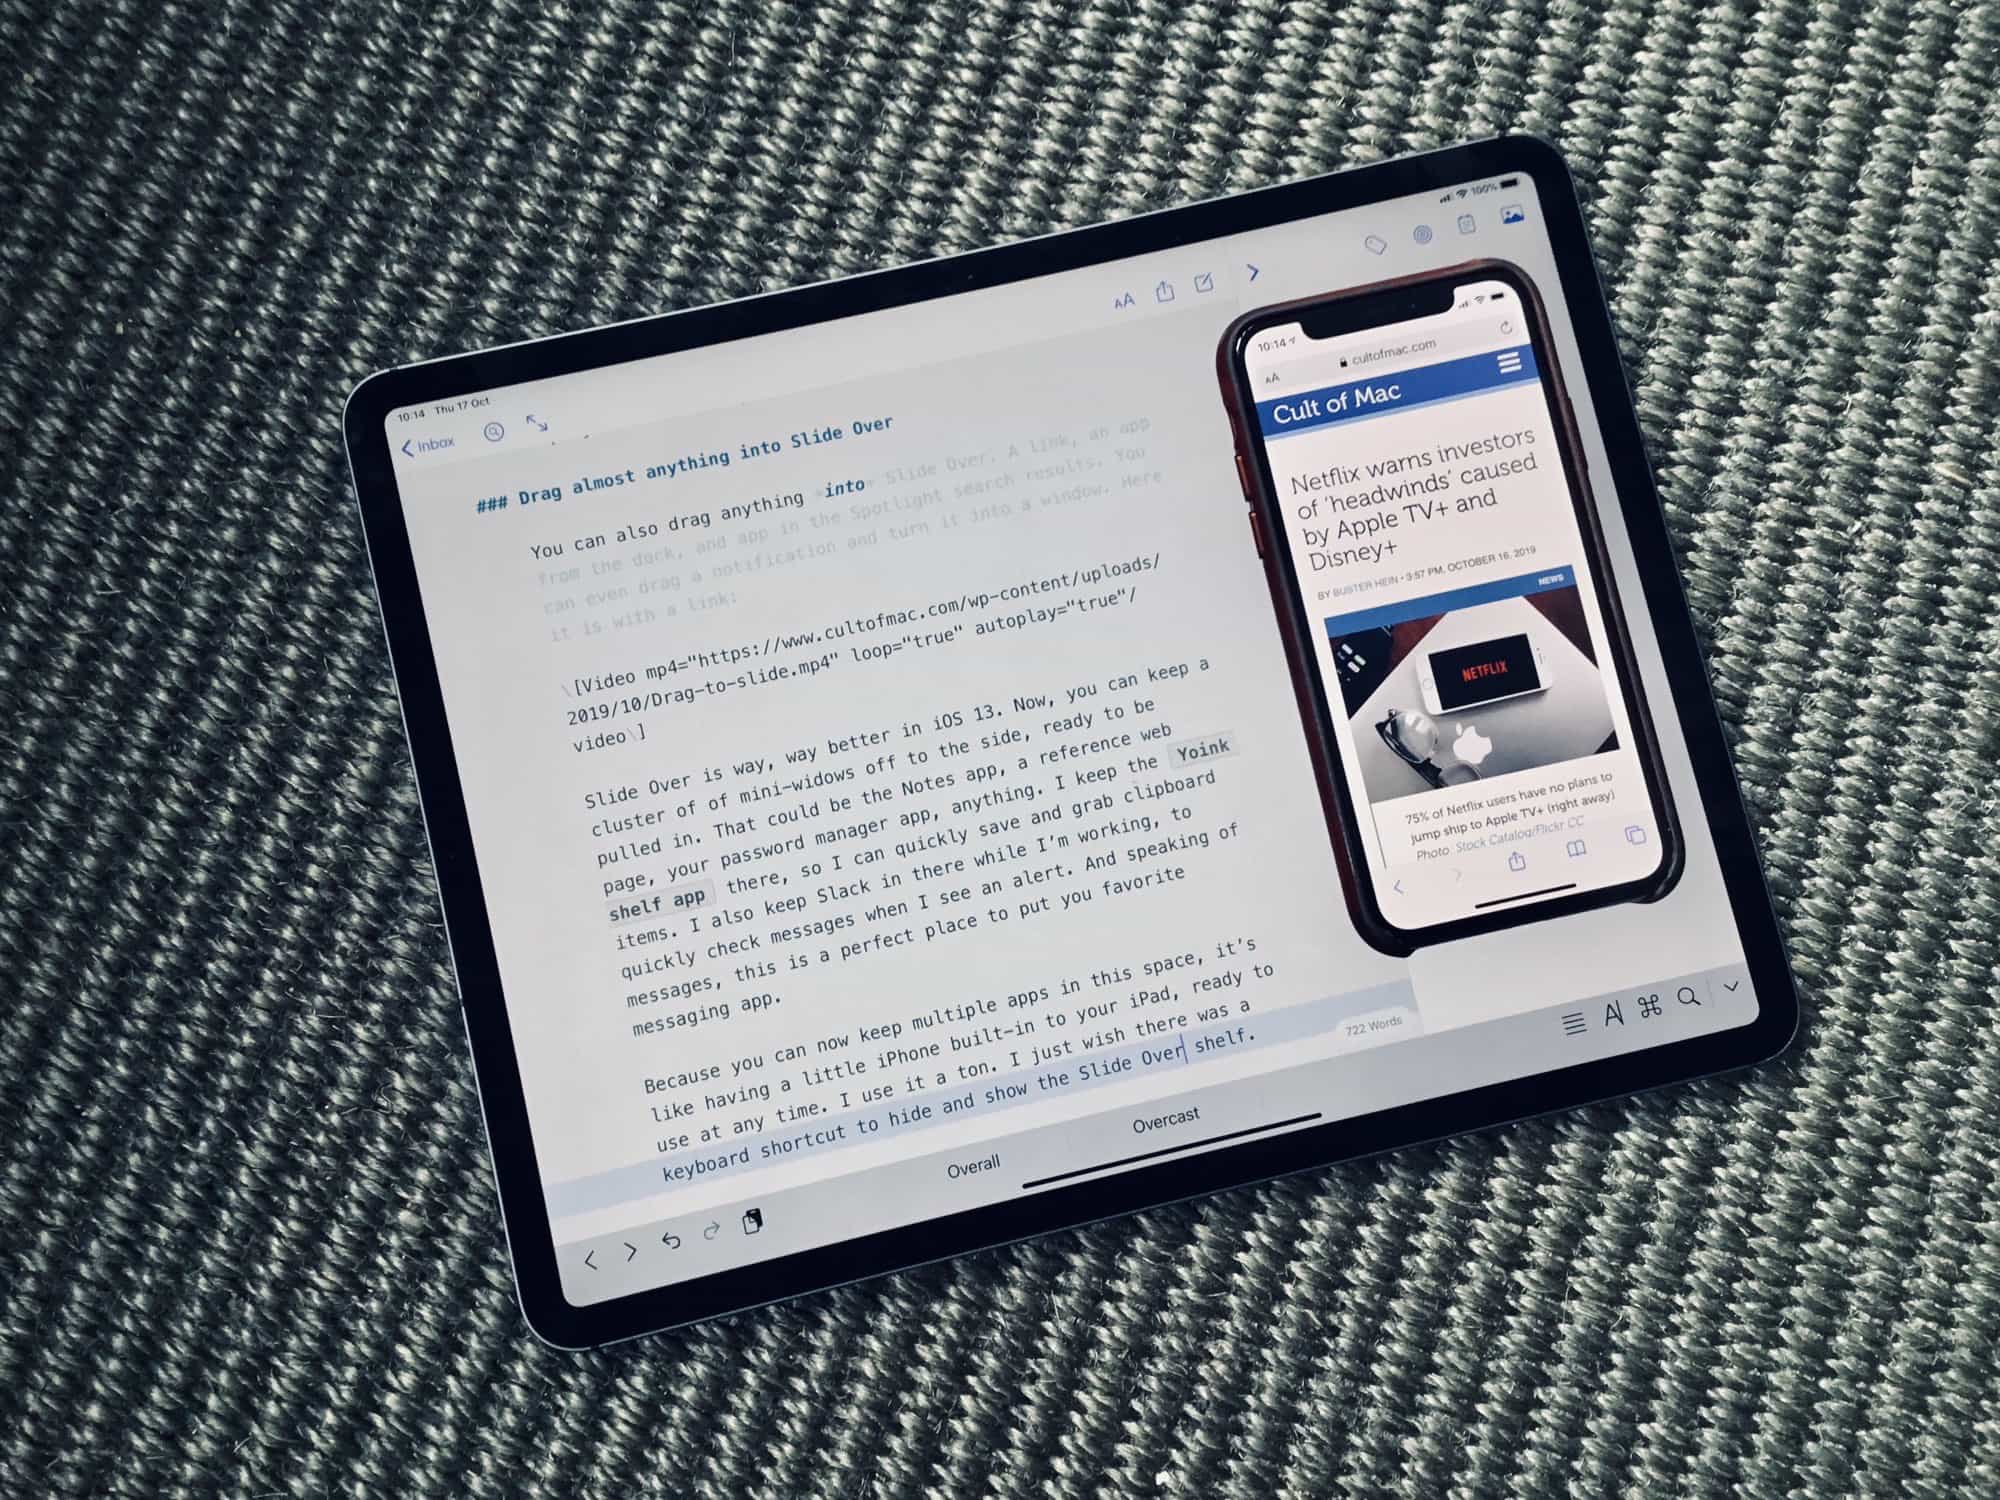 Slide Over in iPadOS 13 is like having an iPhone inside your iPad.